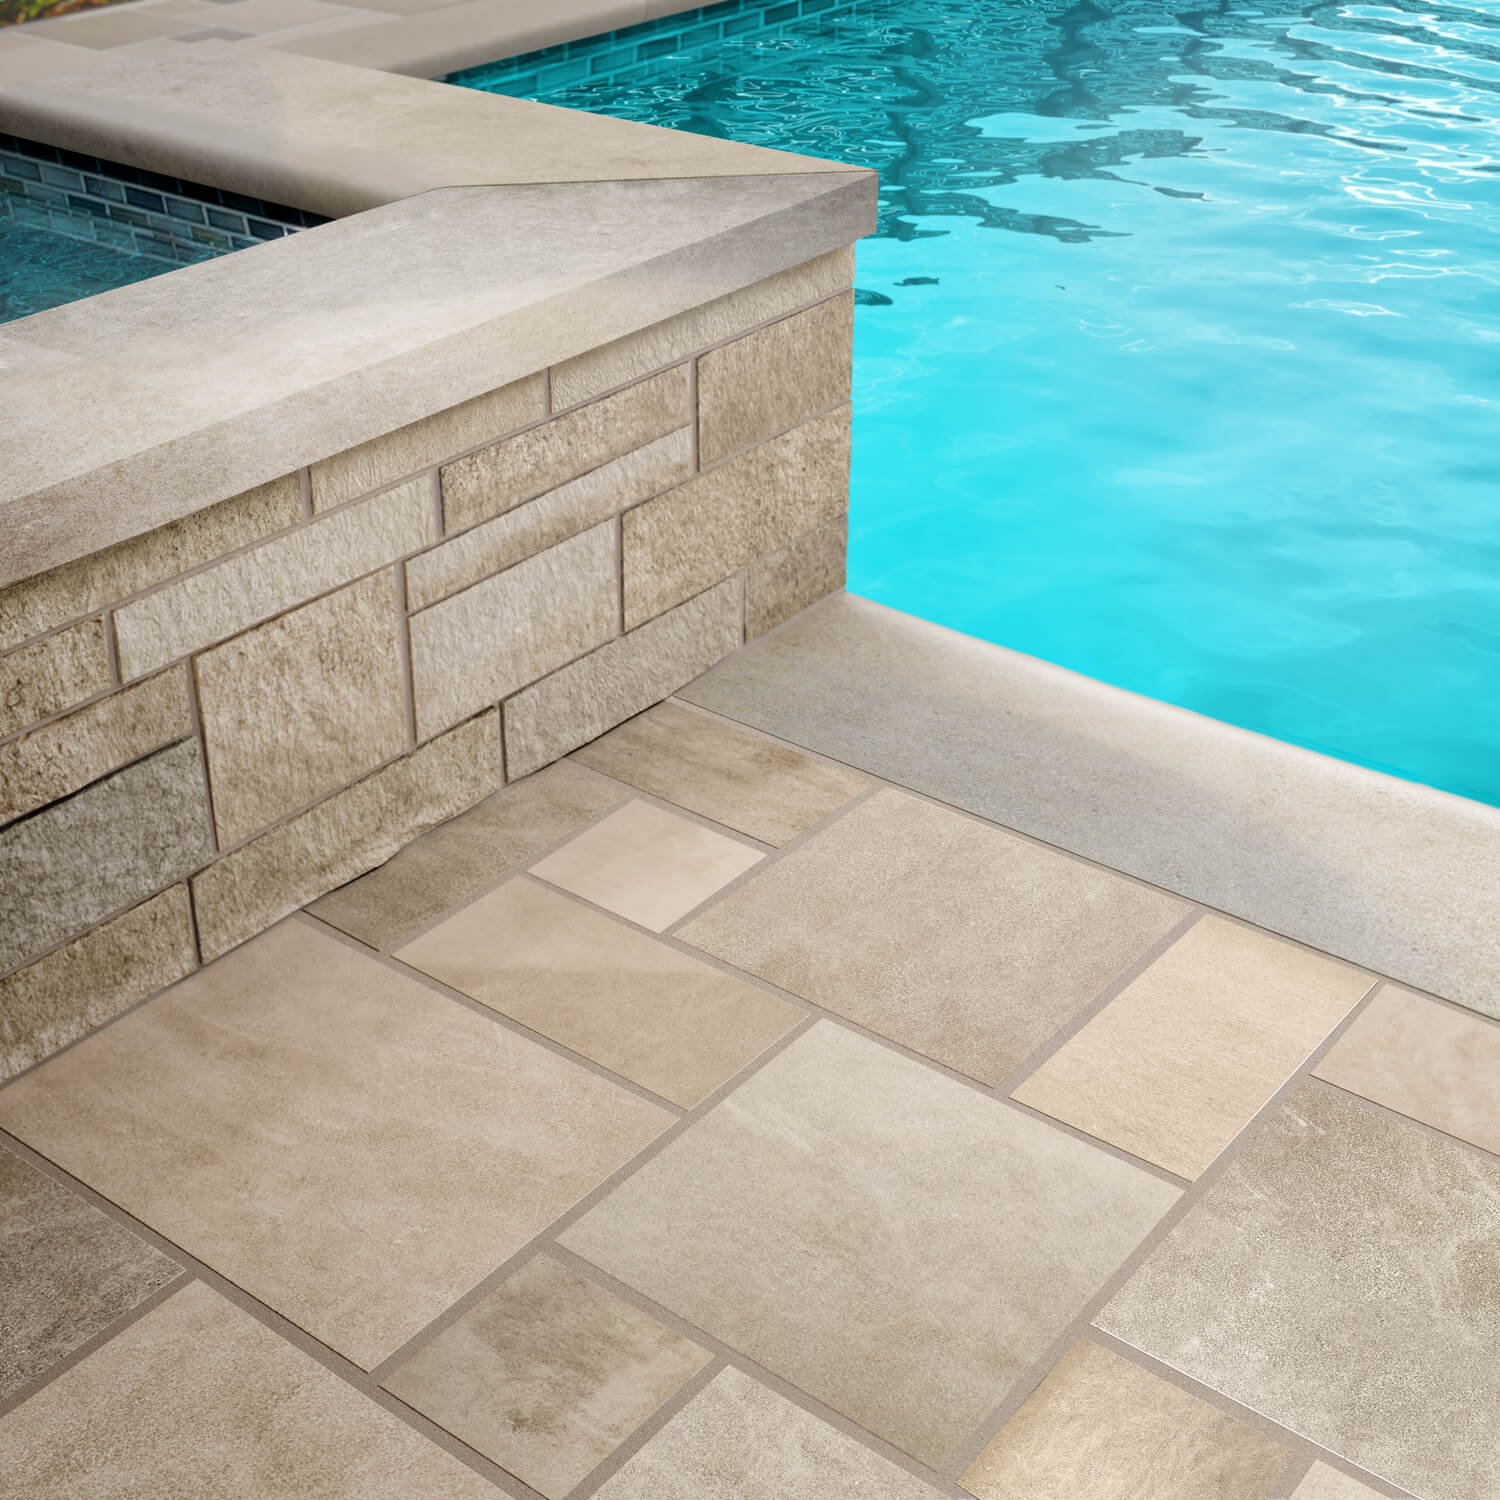 Full Color Blend Indiana Limestone pavers